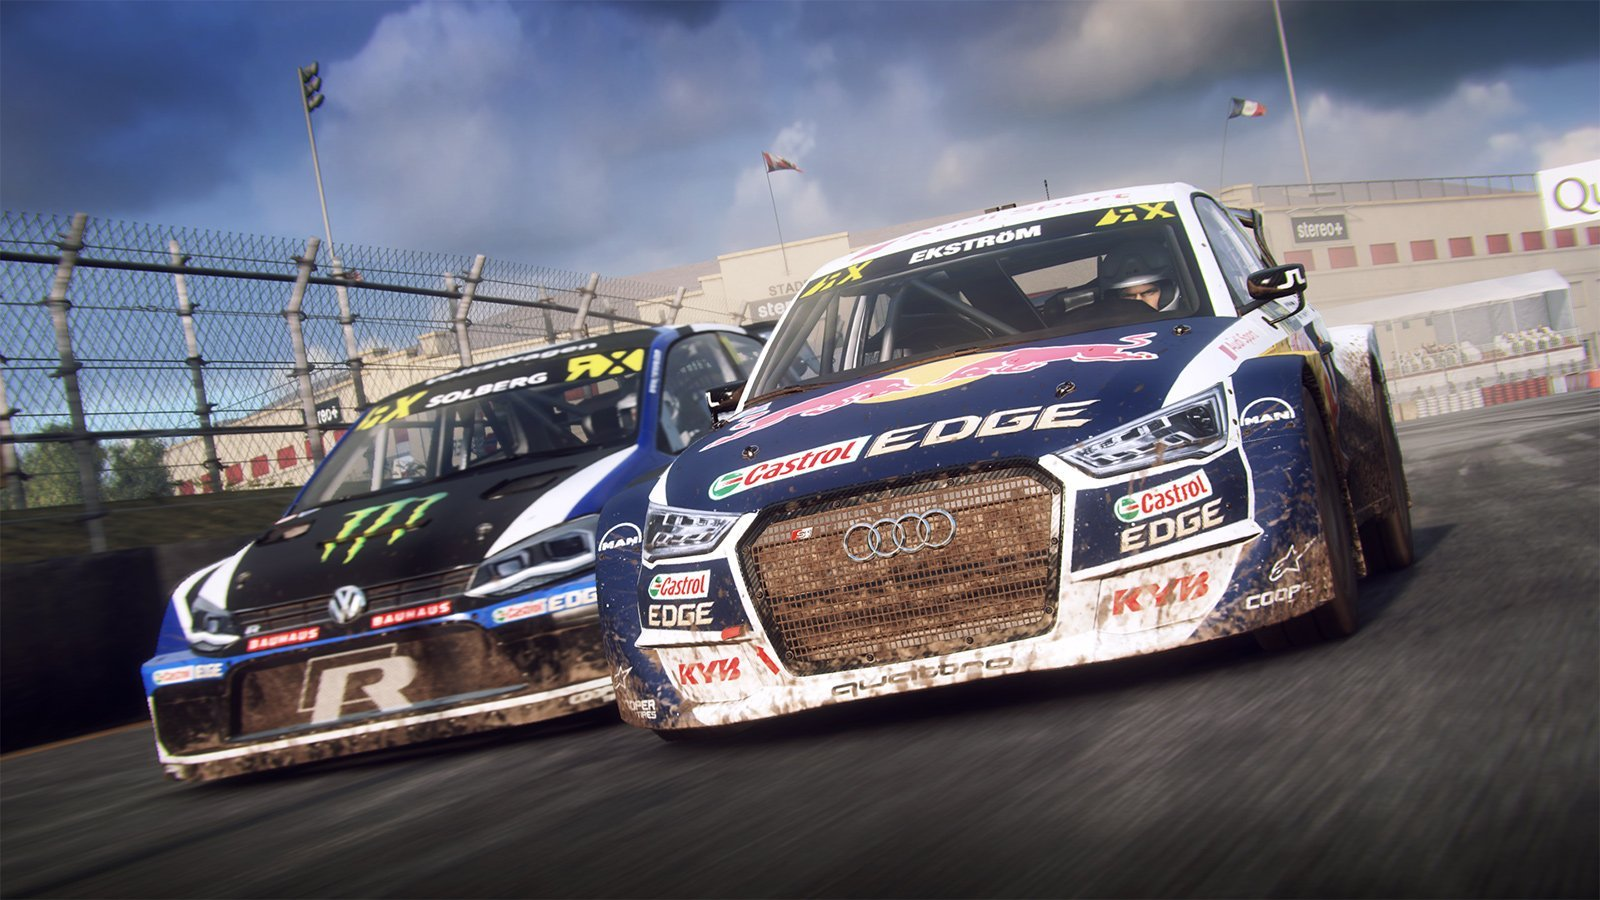 DiRT Rally 2.0 preview 3